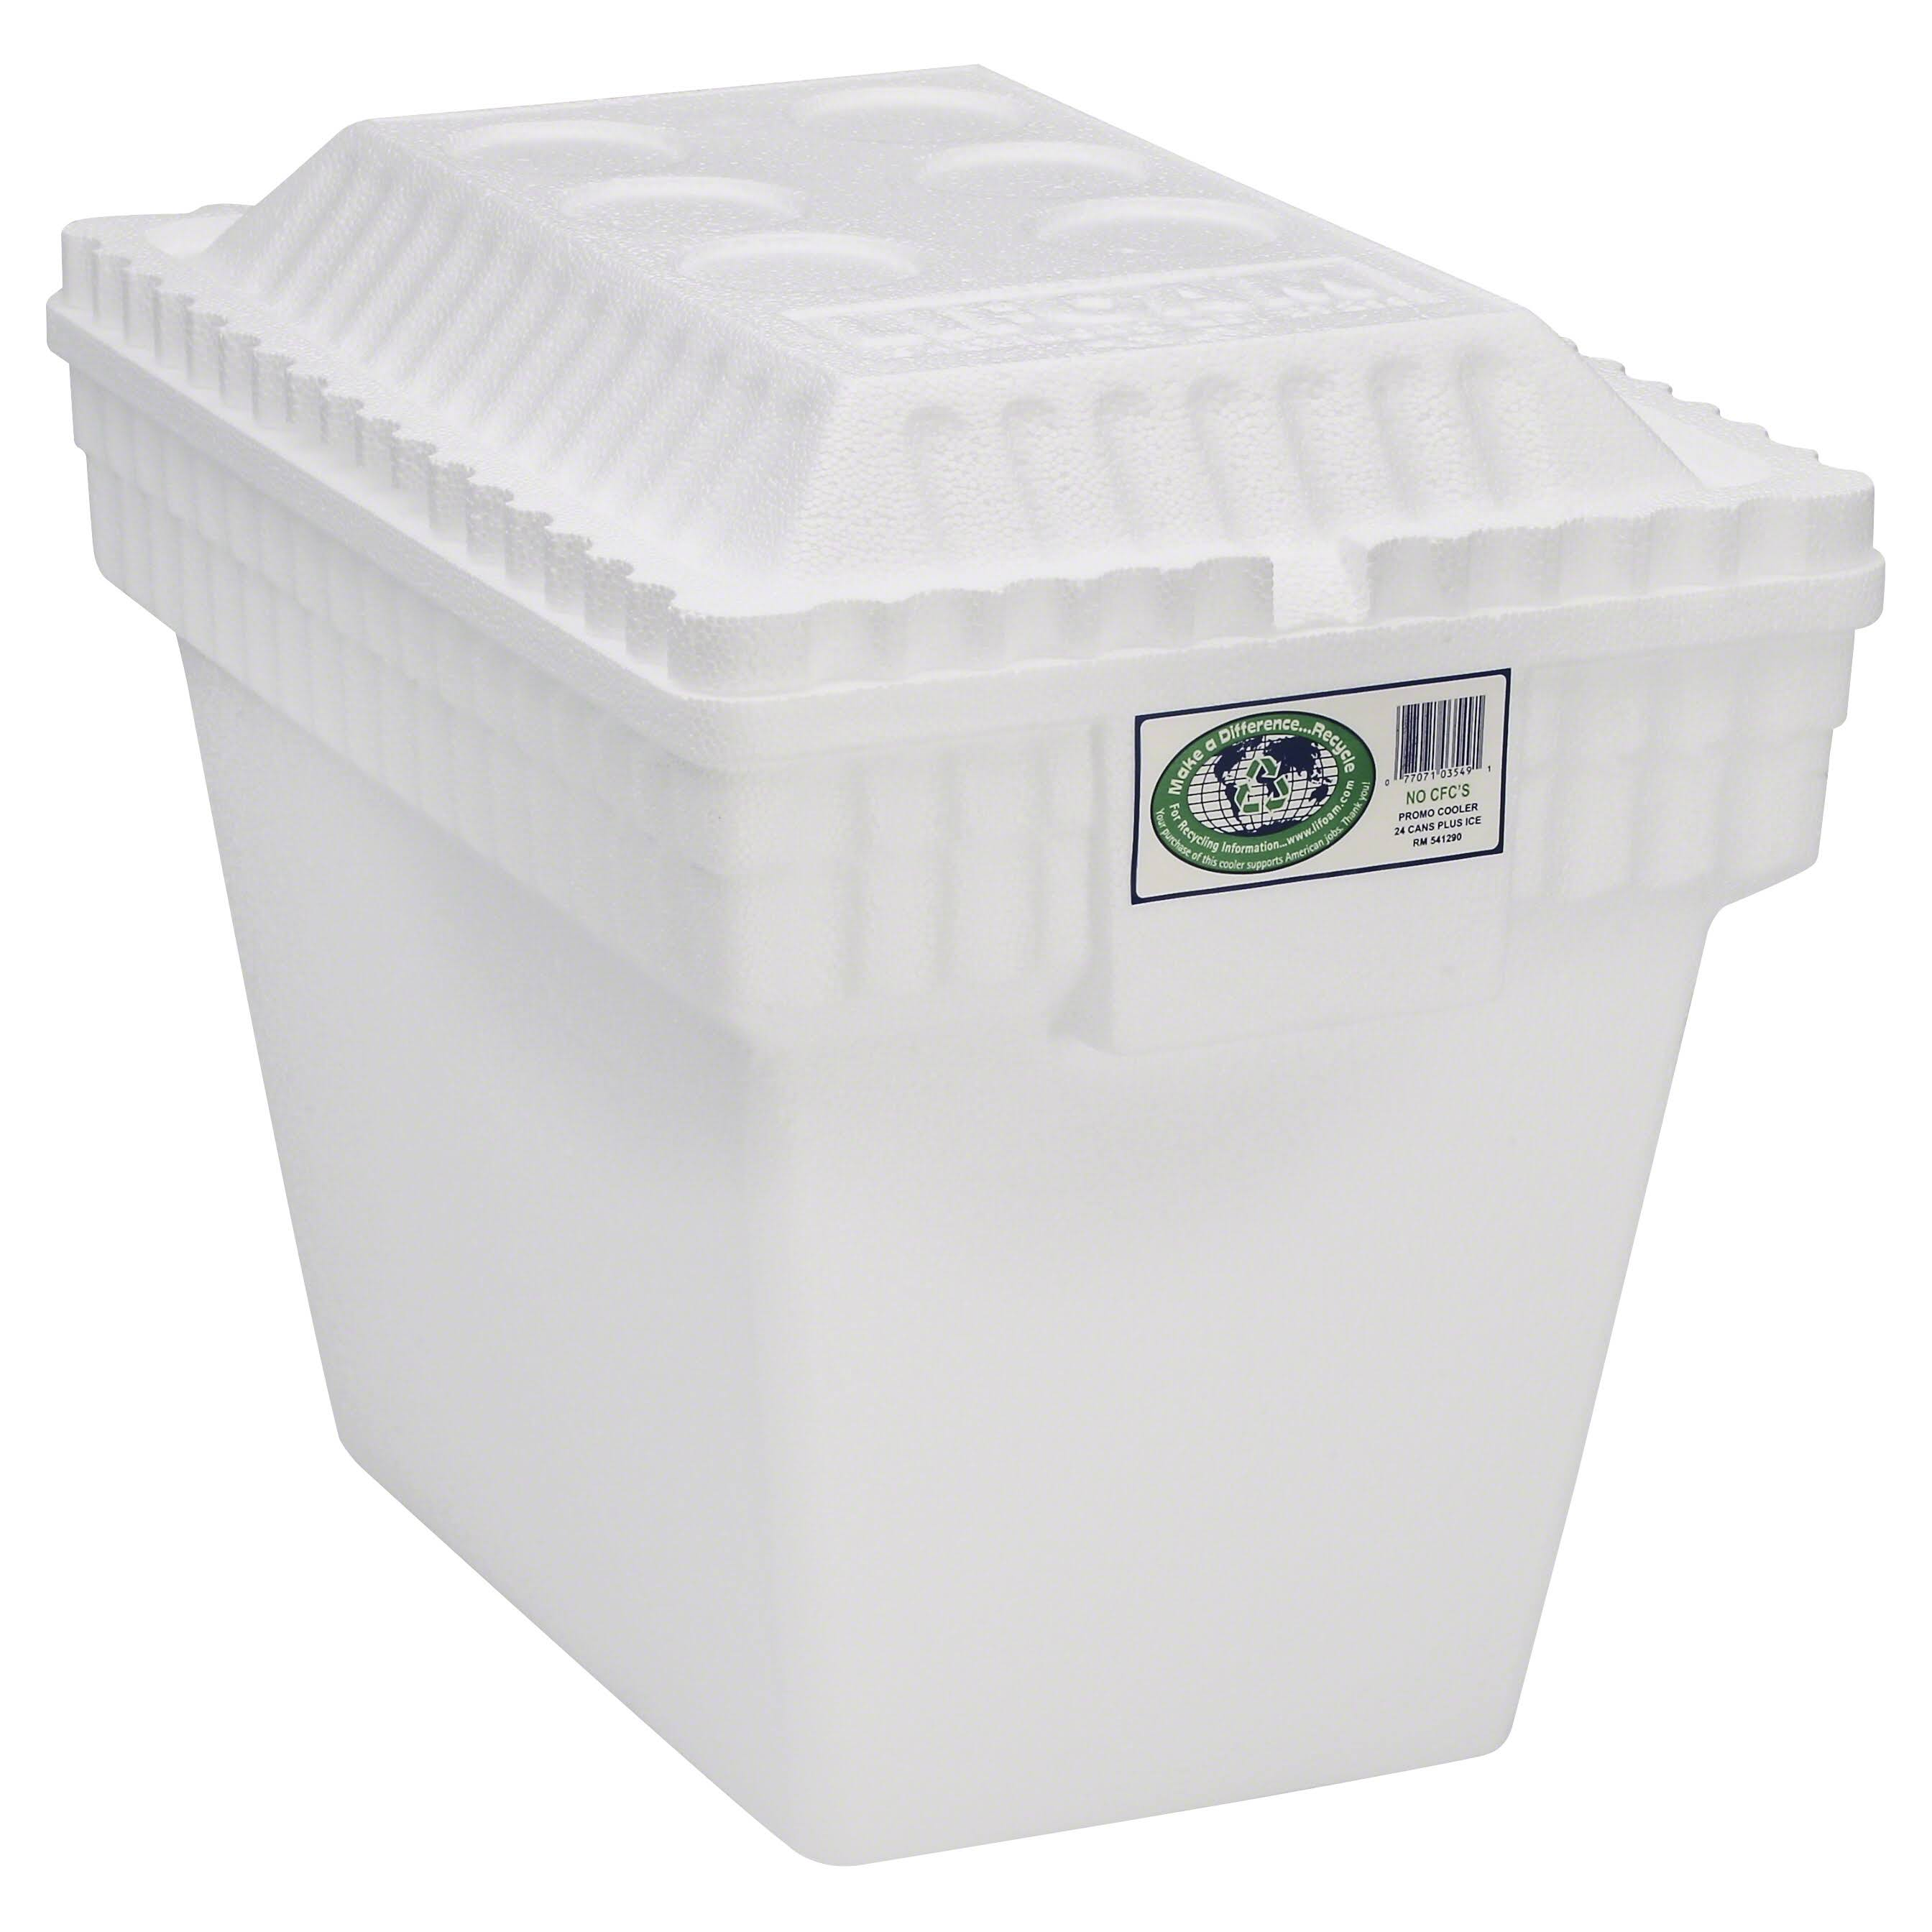 Lifoam Styrafoam Ice Chest Cooler - with Molded Side Carry Handles, 30qt